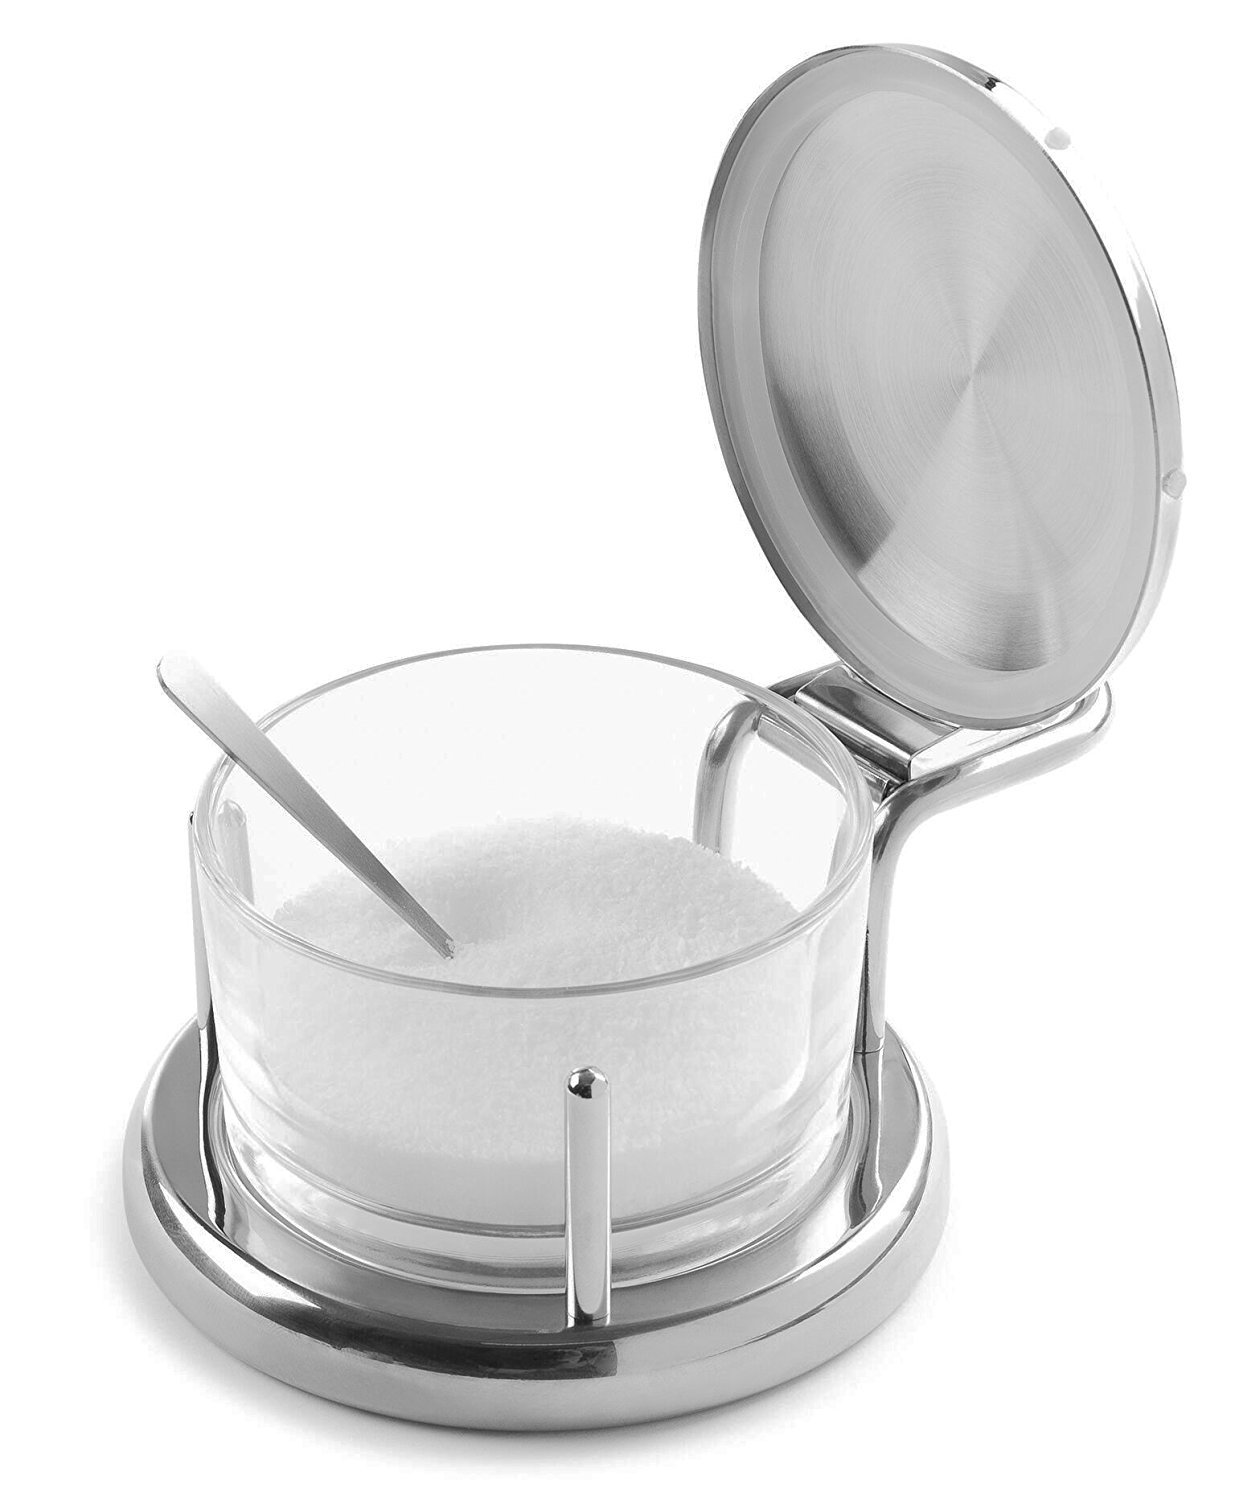 Modern Innovations Glass Salt Server with Lid and Spoon Stainless Steel 18/8 Serving Bowl Great for Storing Salt, Sugar, Honey, Cheese, Condiments, Spices & Herbs unknown